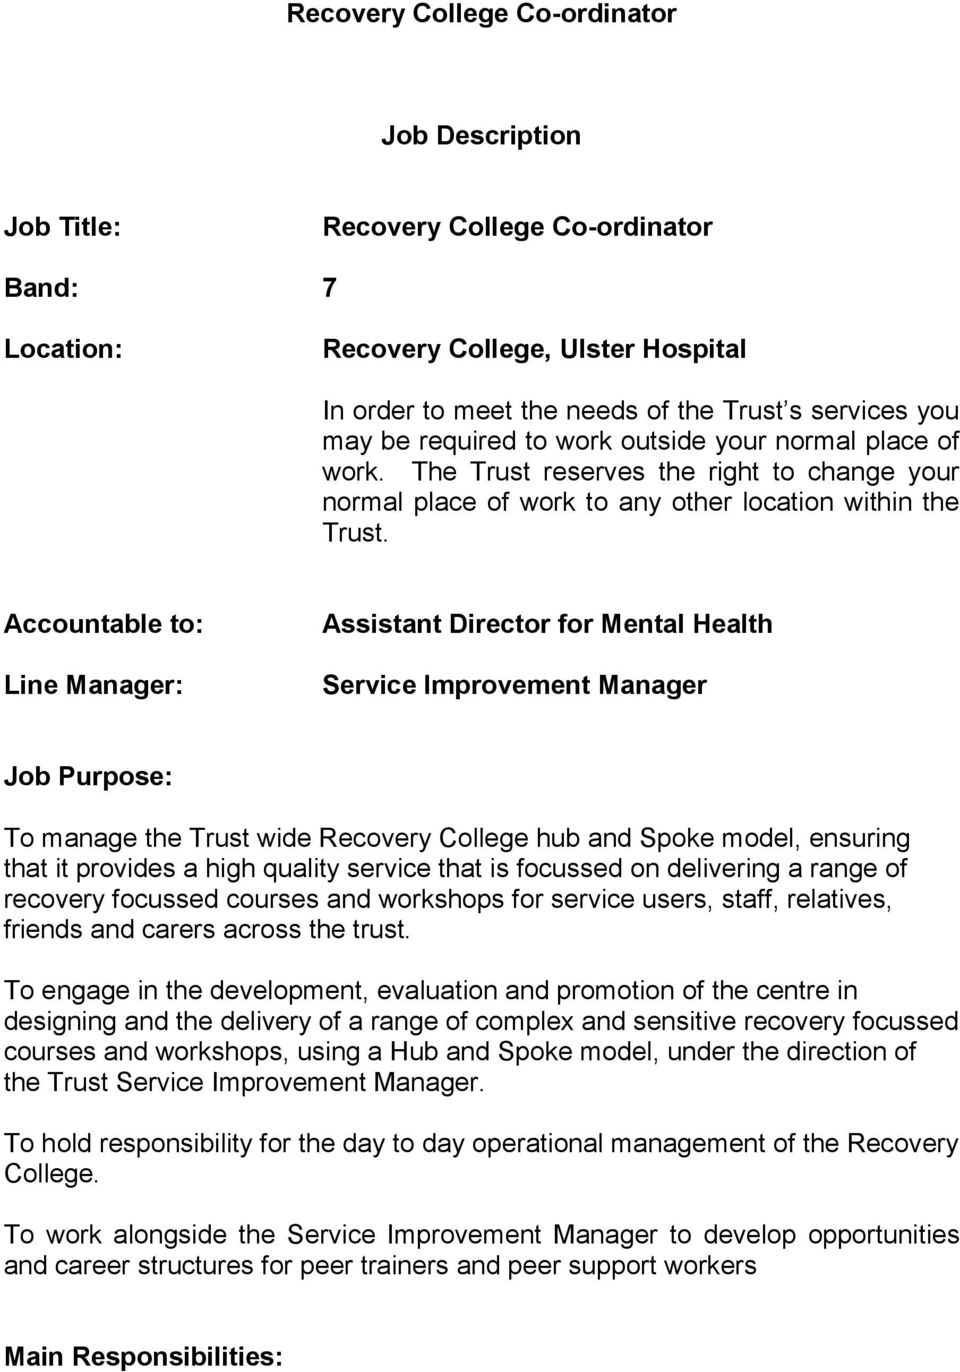 Accountable to: Line Manager: Assistant Director for Mental Health Service Improvement Manager Job Purpose: To manage the Trust wide Recovery College hub and Spoke model, ensuring that it provides a